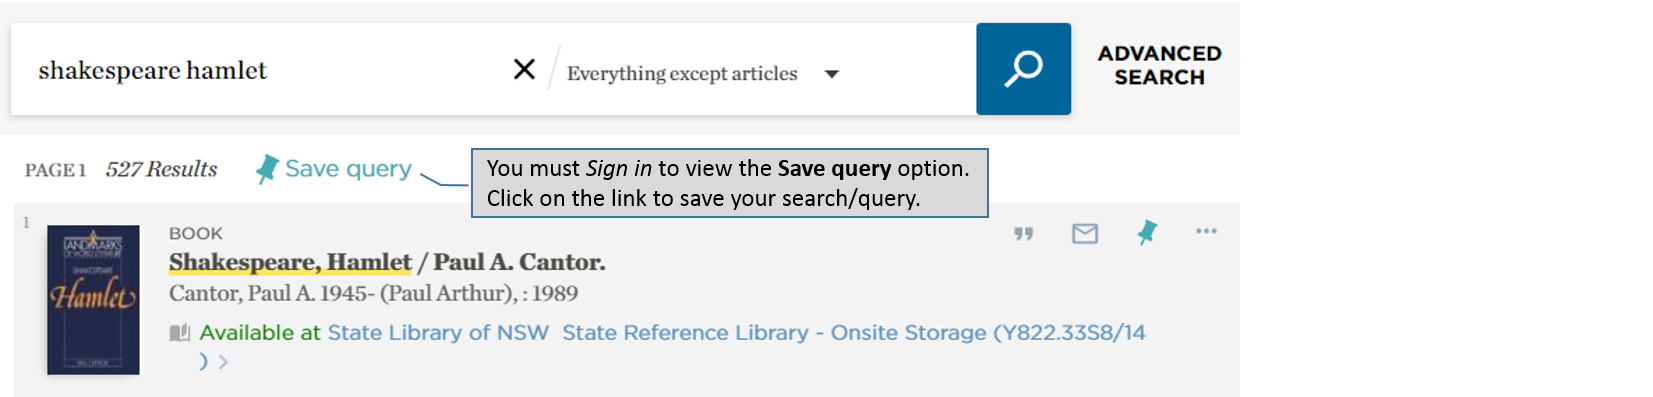 Catalogue – saving and viewing queries